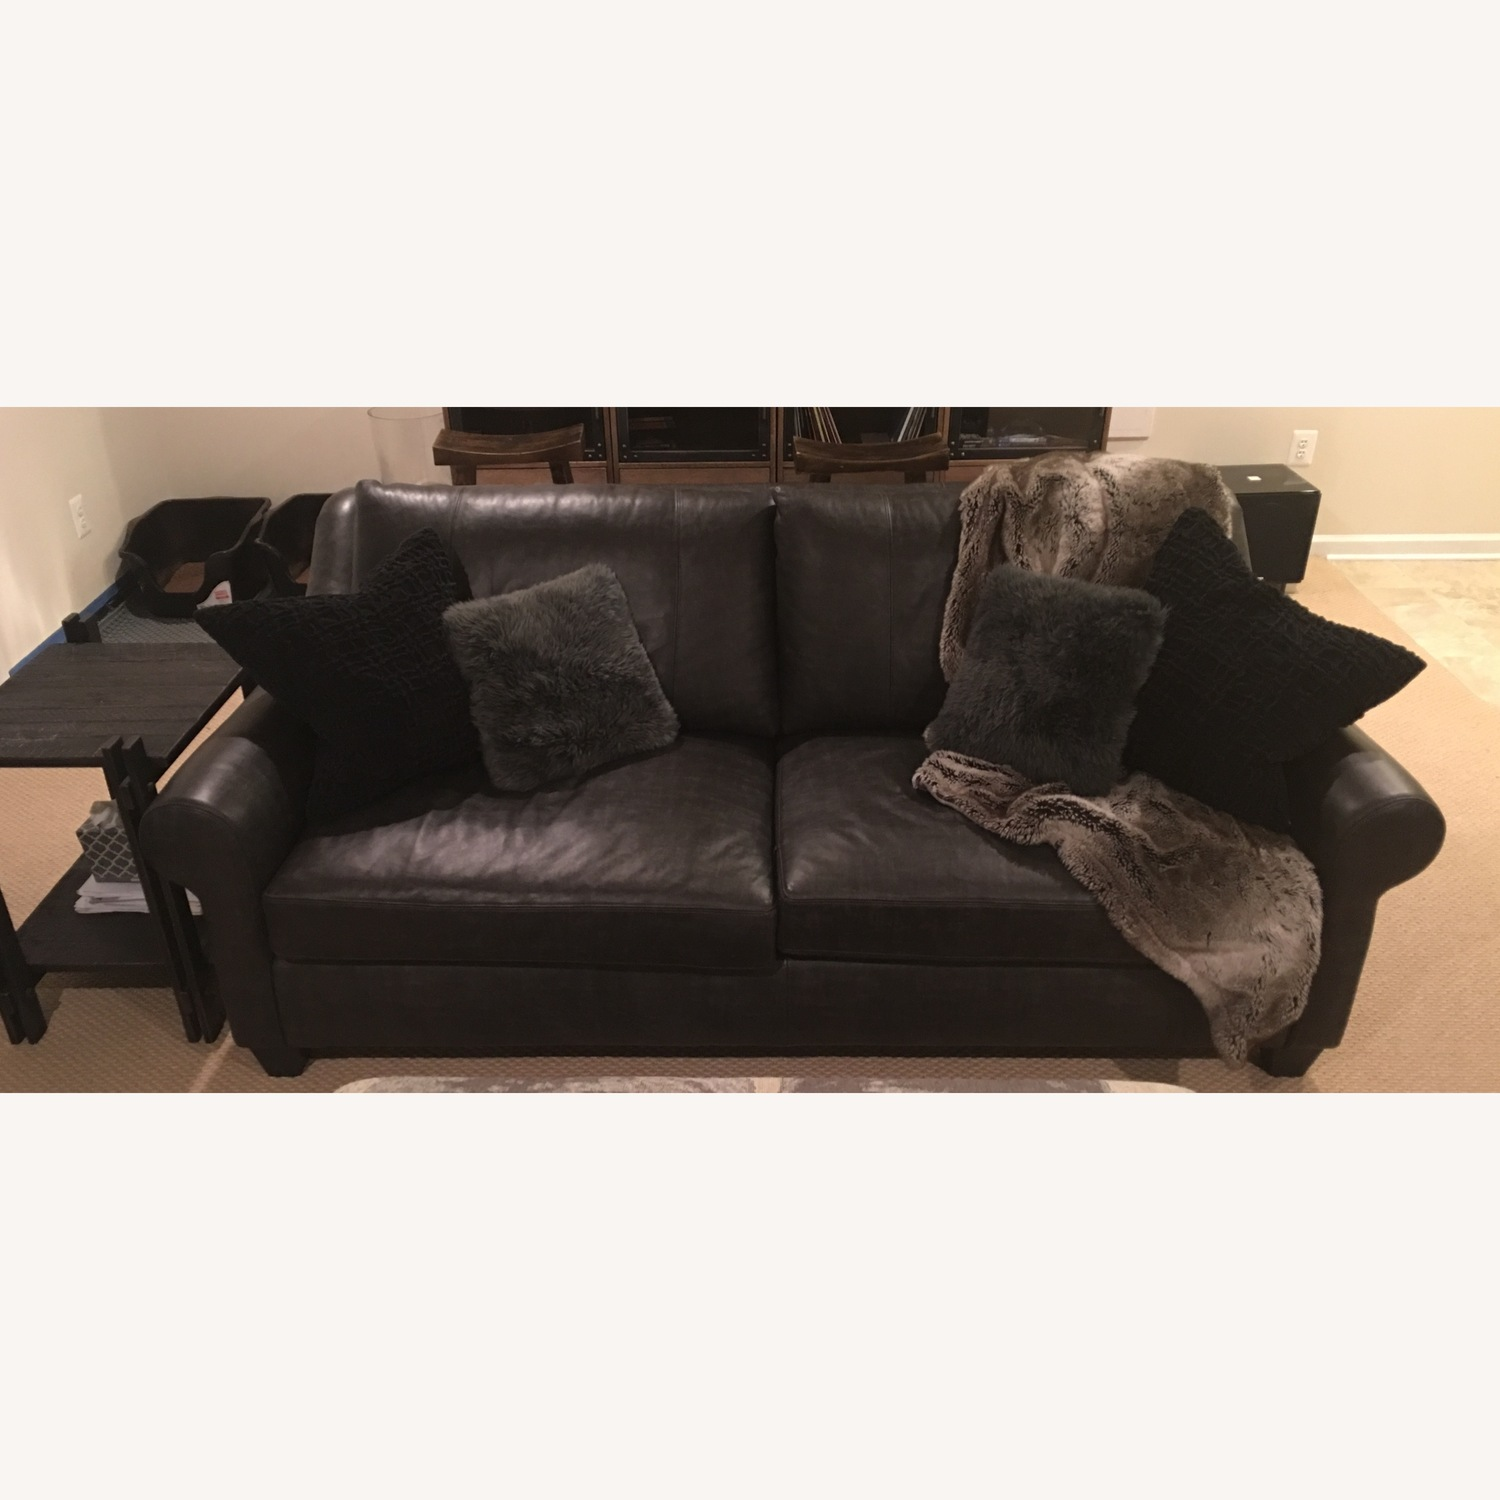 Arhaus Rockway Leather Sofa - image-4